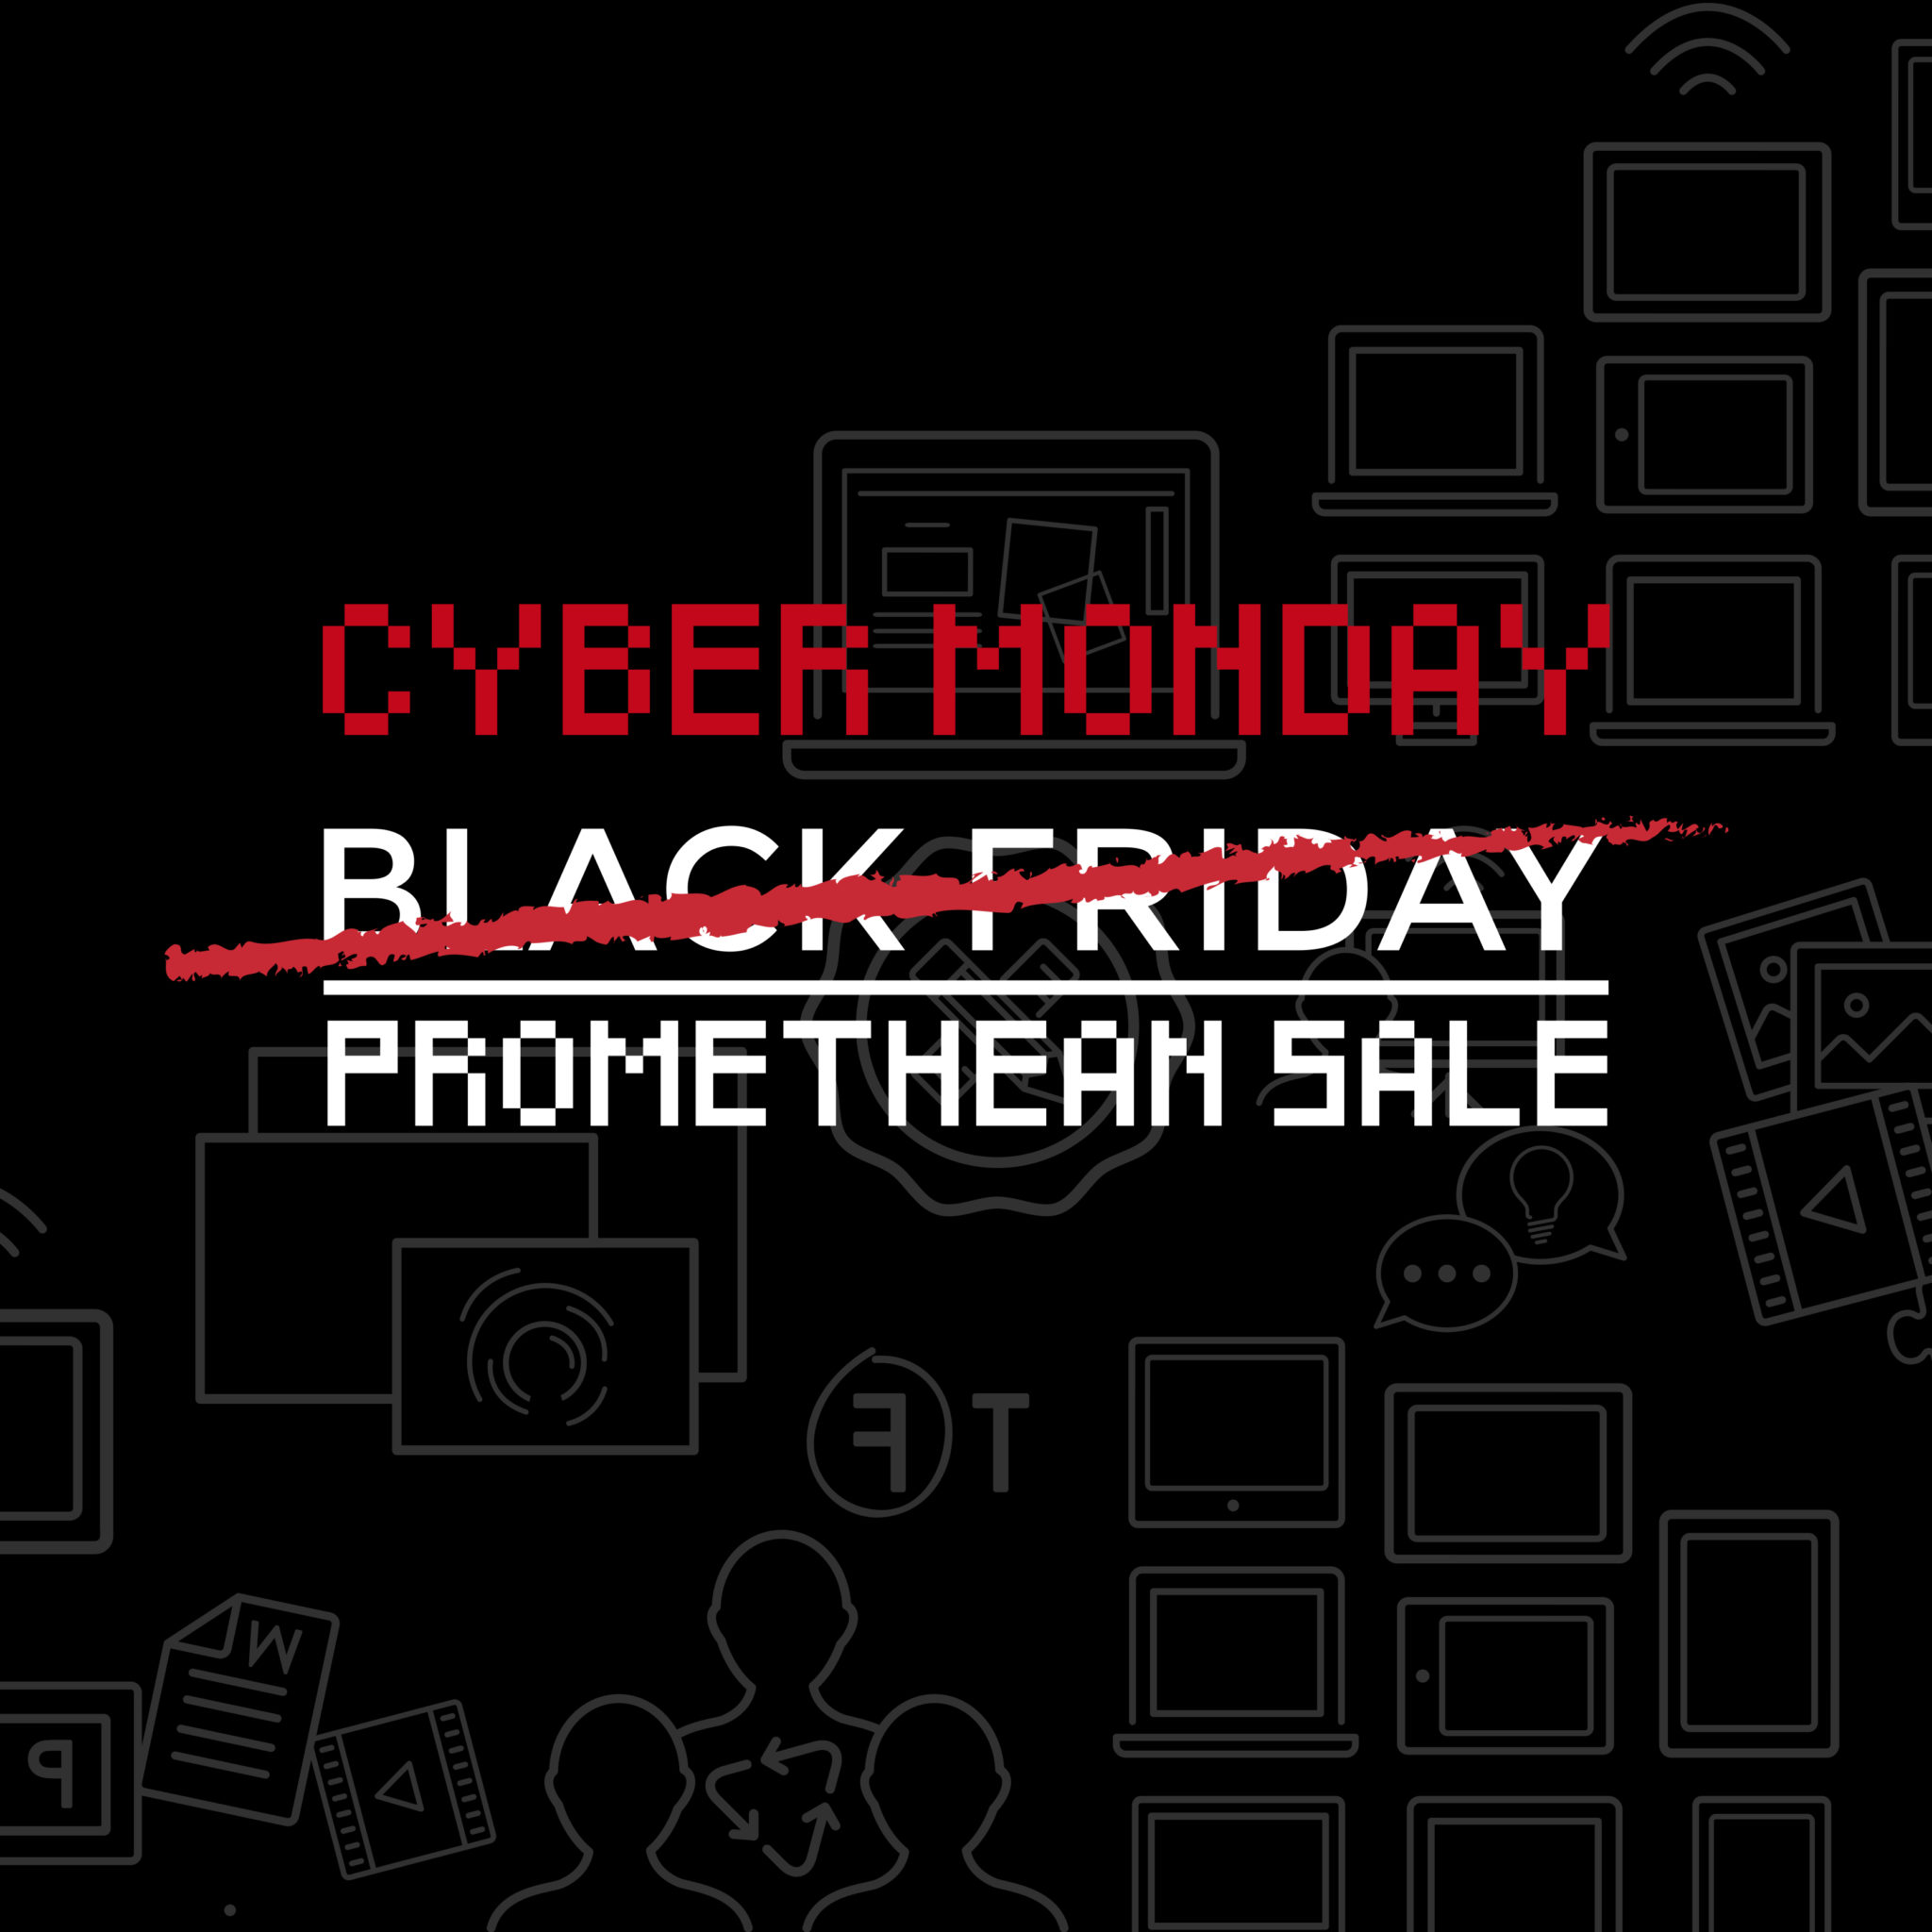 Cyber Monday Promethean Sale